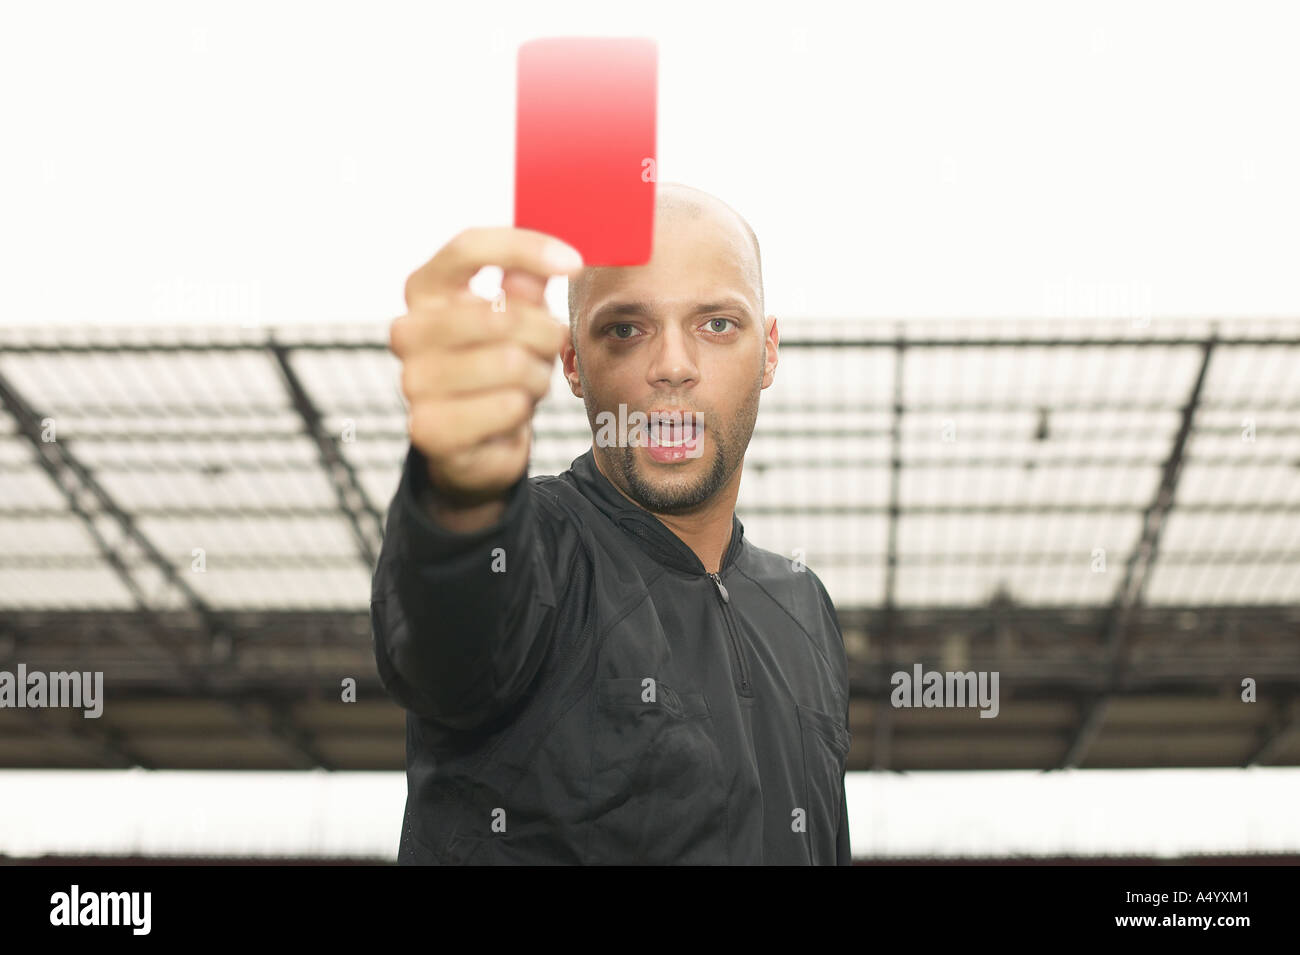 Referee giving red card - Stock Image